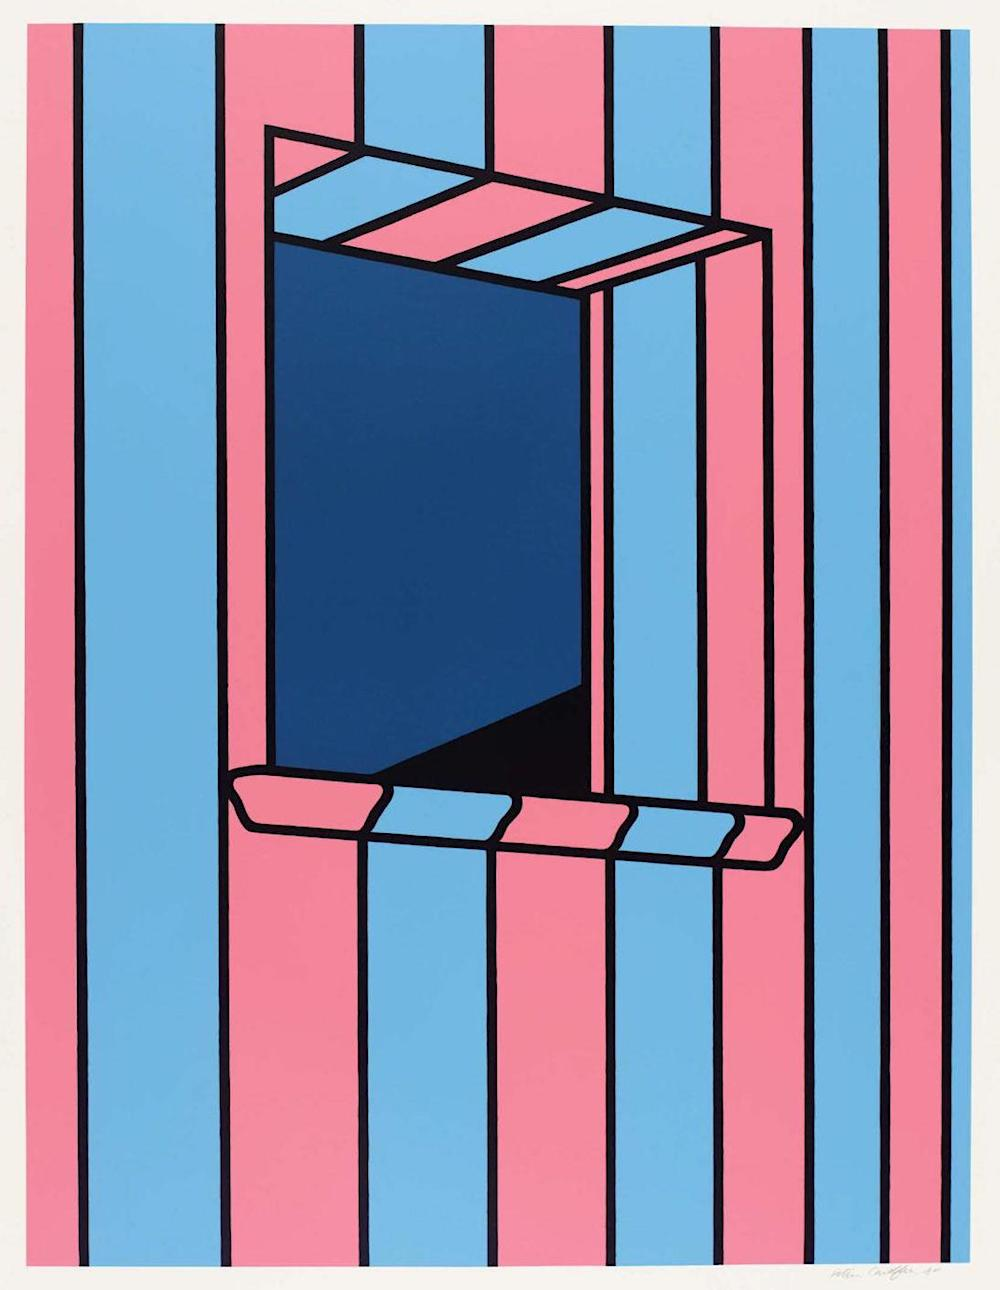 a Patrick Caulfield painting of a window in a striped wall,  1972